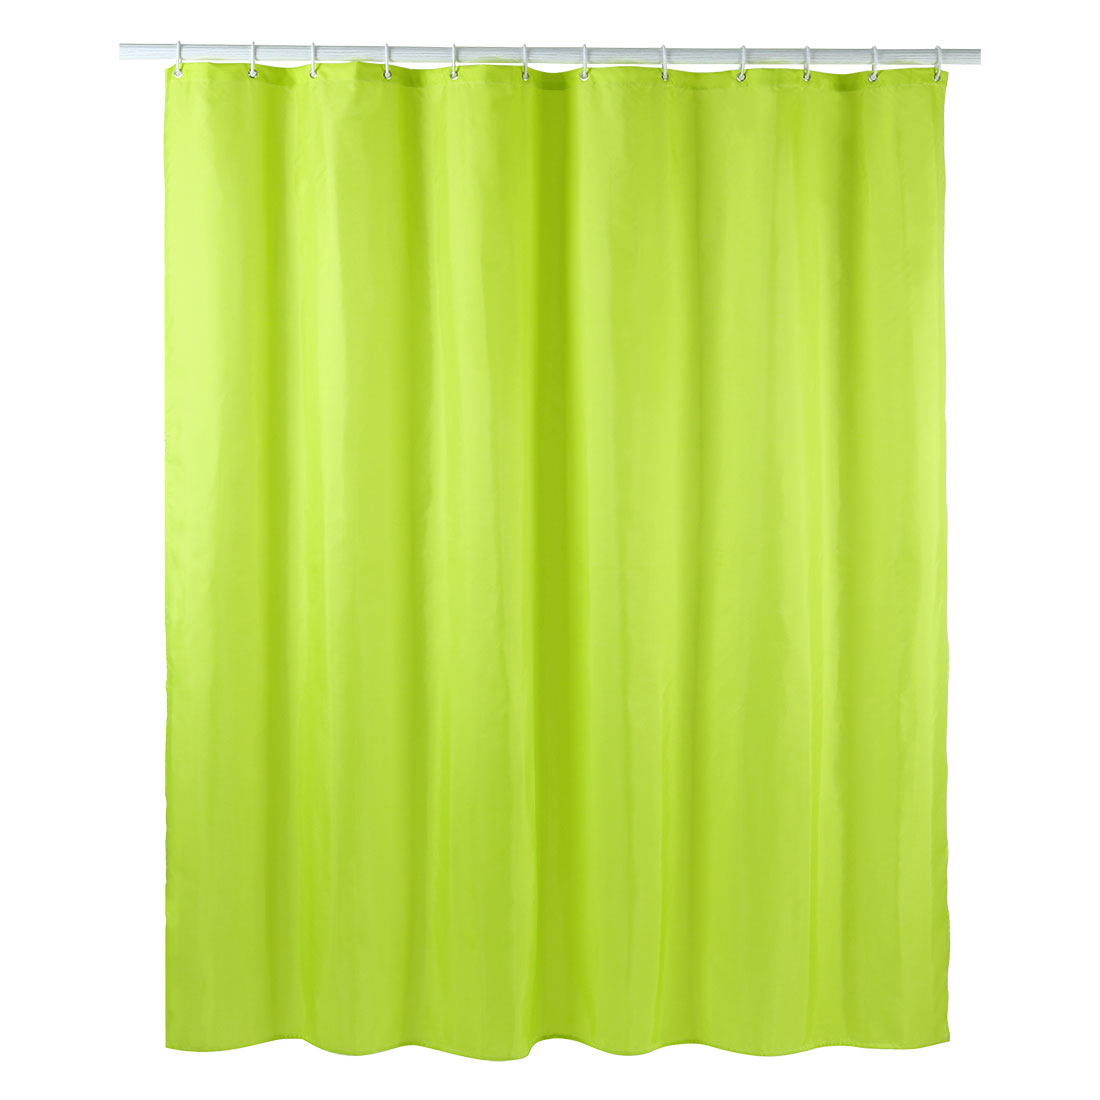 Solid Color Polyester Fabric Shower Curtain with Hooks Green 72 x 78 Inch - image 8 of 8